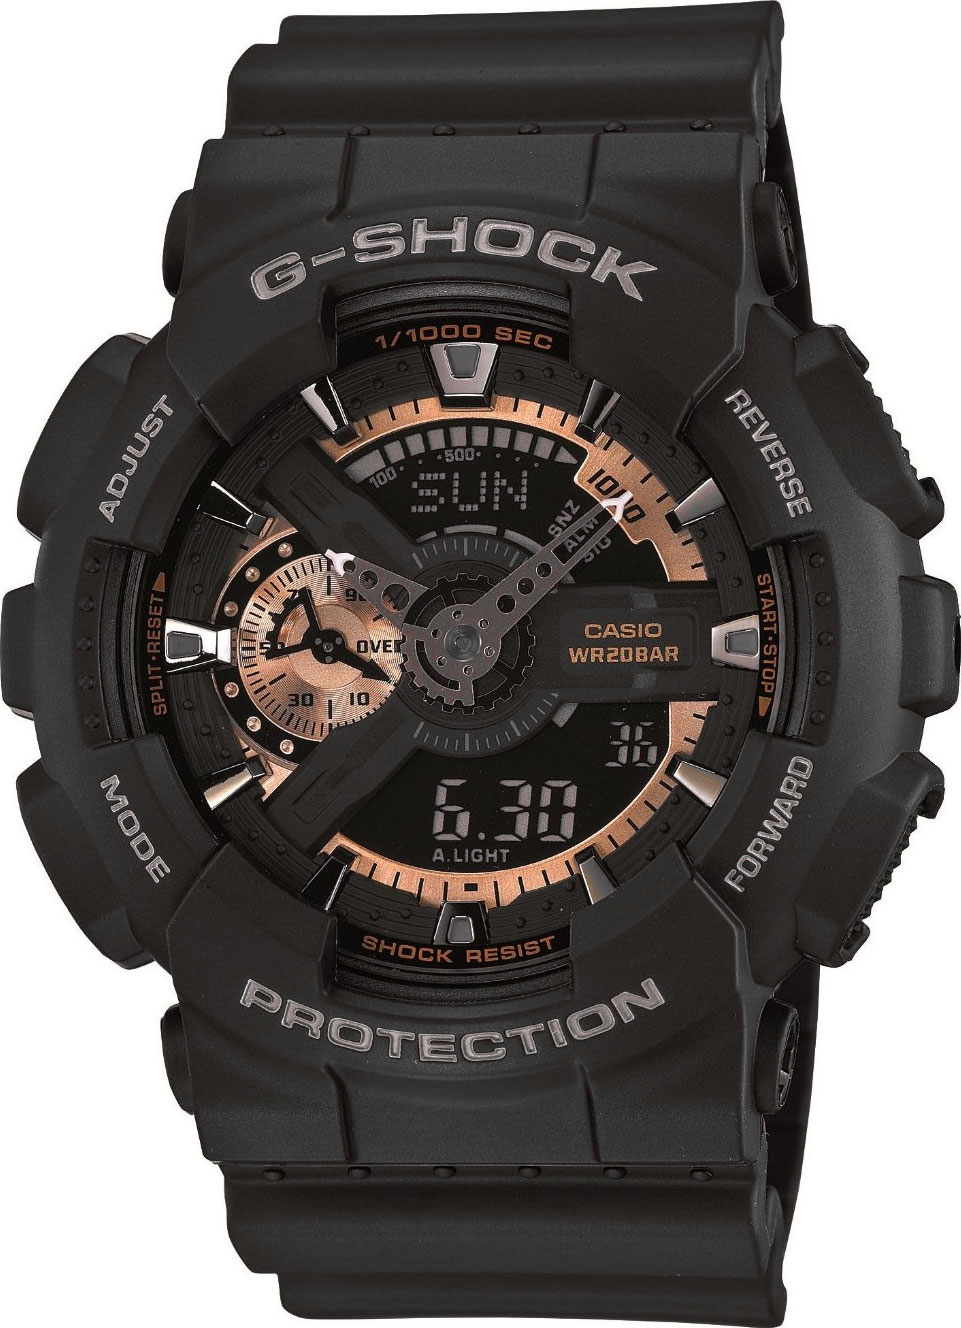 Casio G-shock GA-110RG-1A casio g shock ga 800 1a